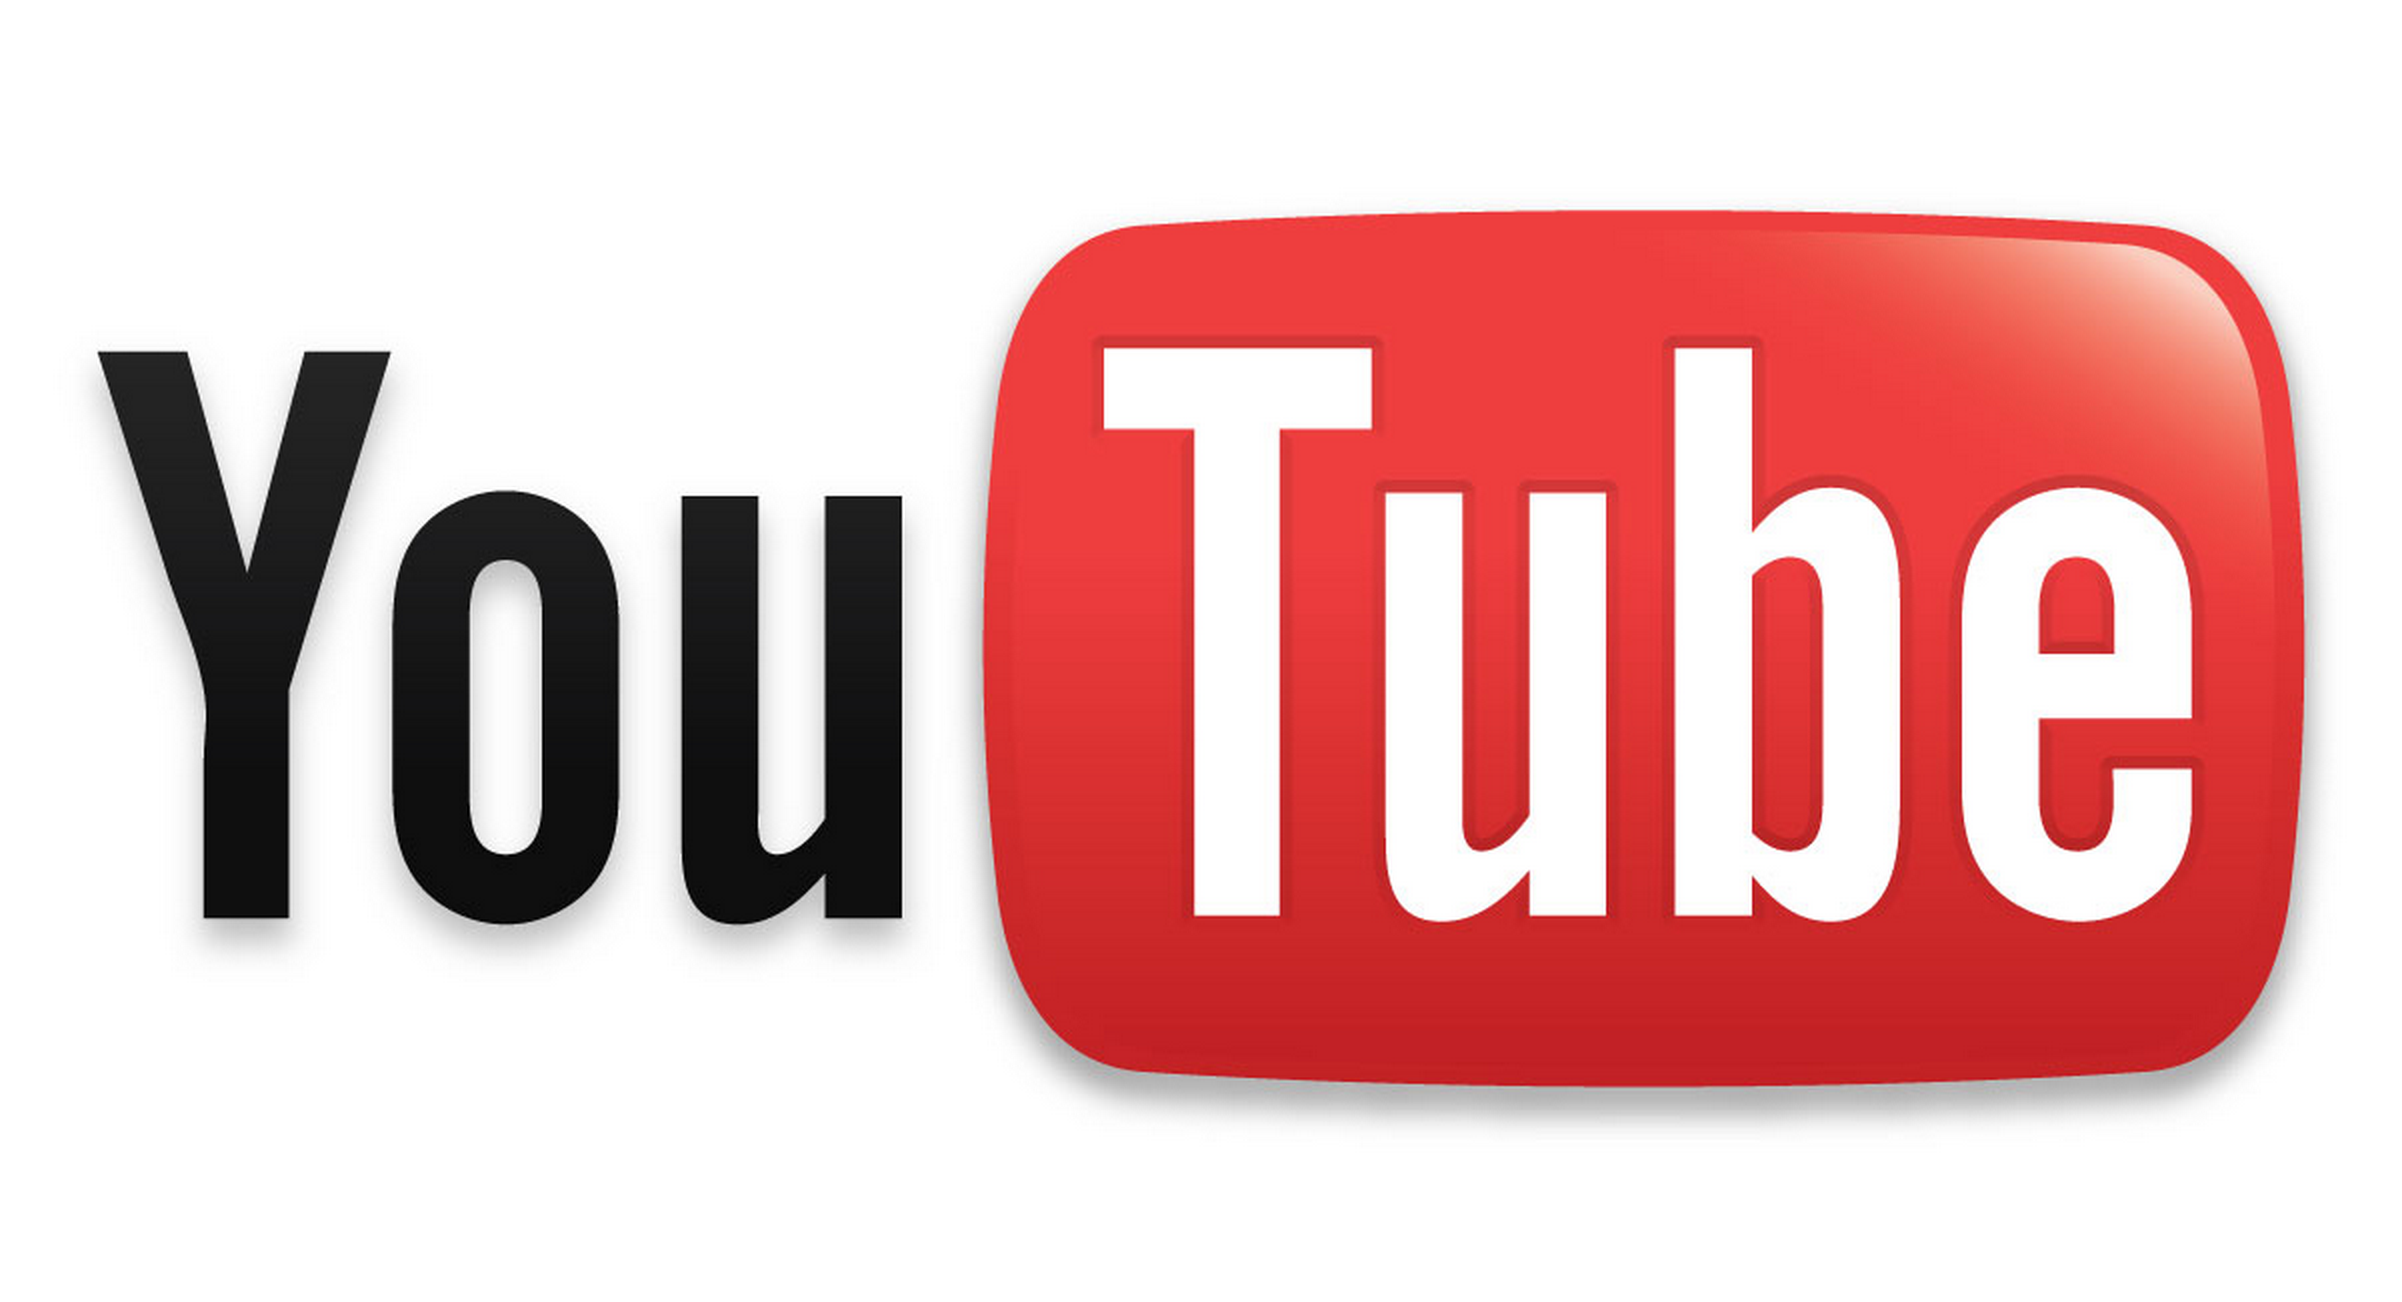 youtube-clipart - Youtube Clipart